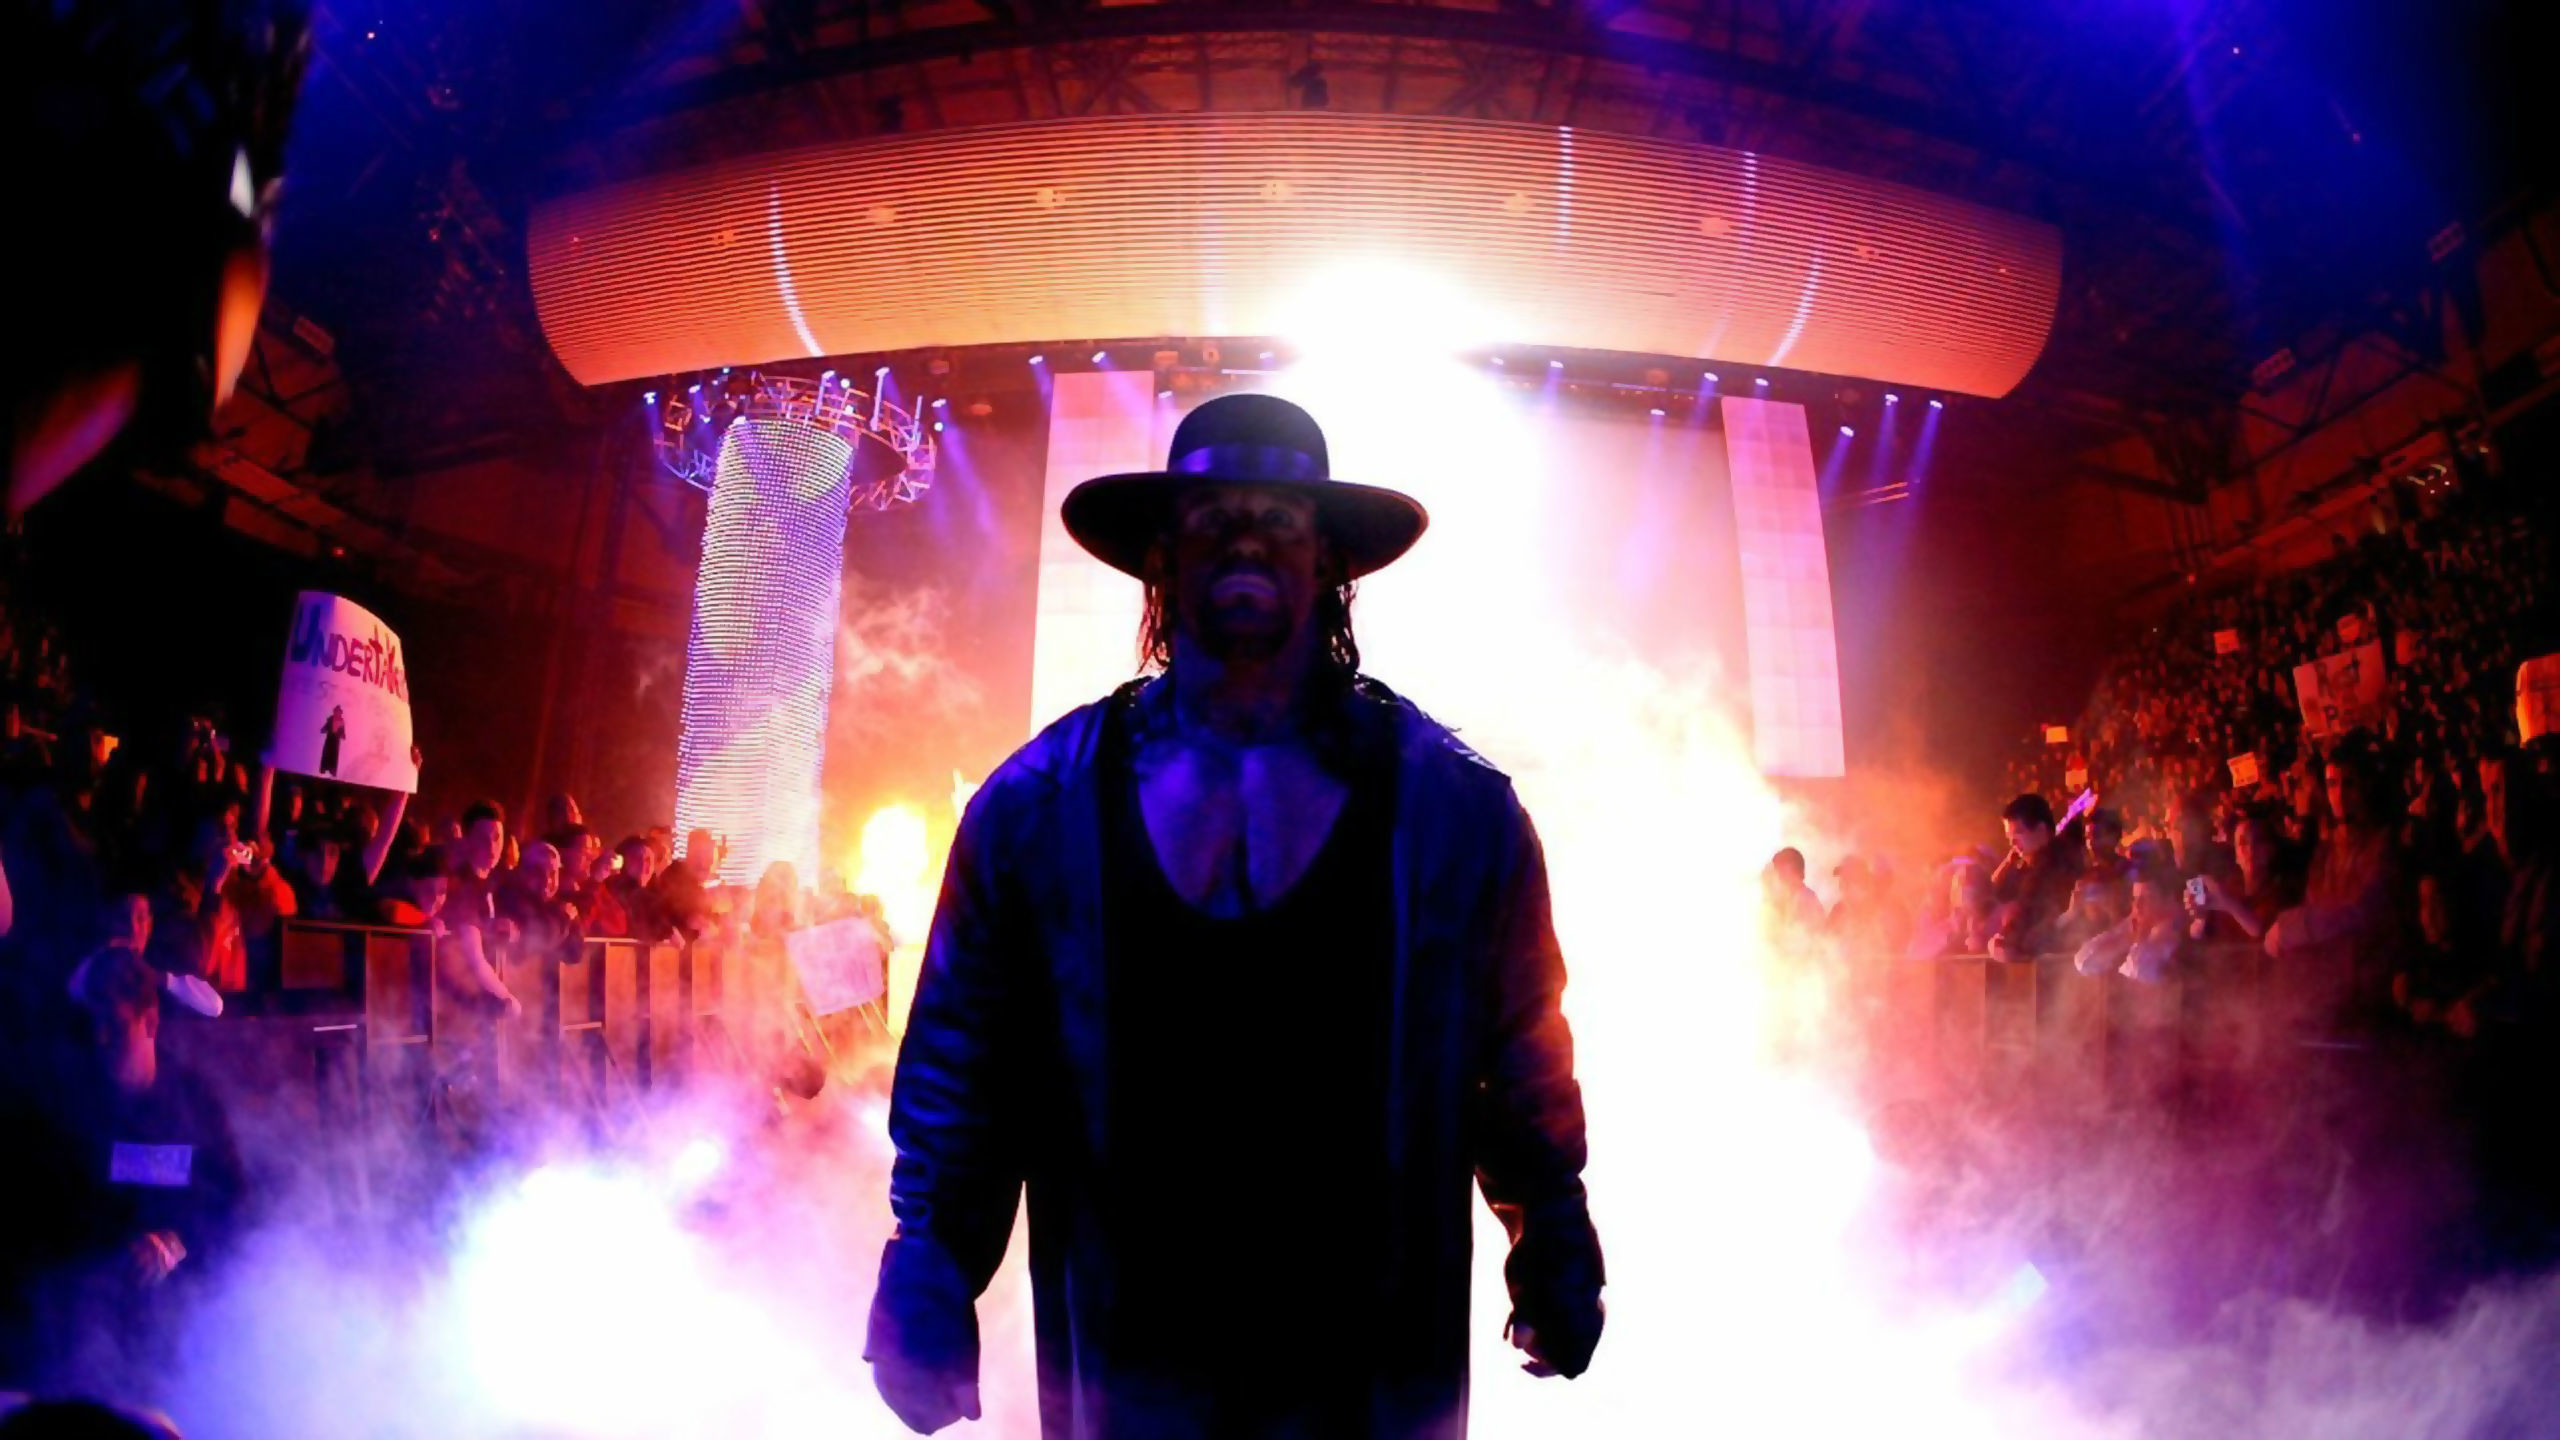 Undertaker Hd Images 8